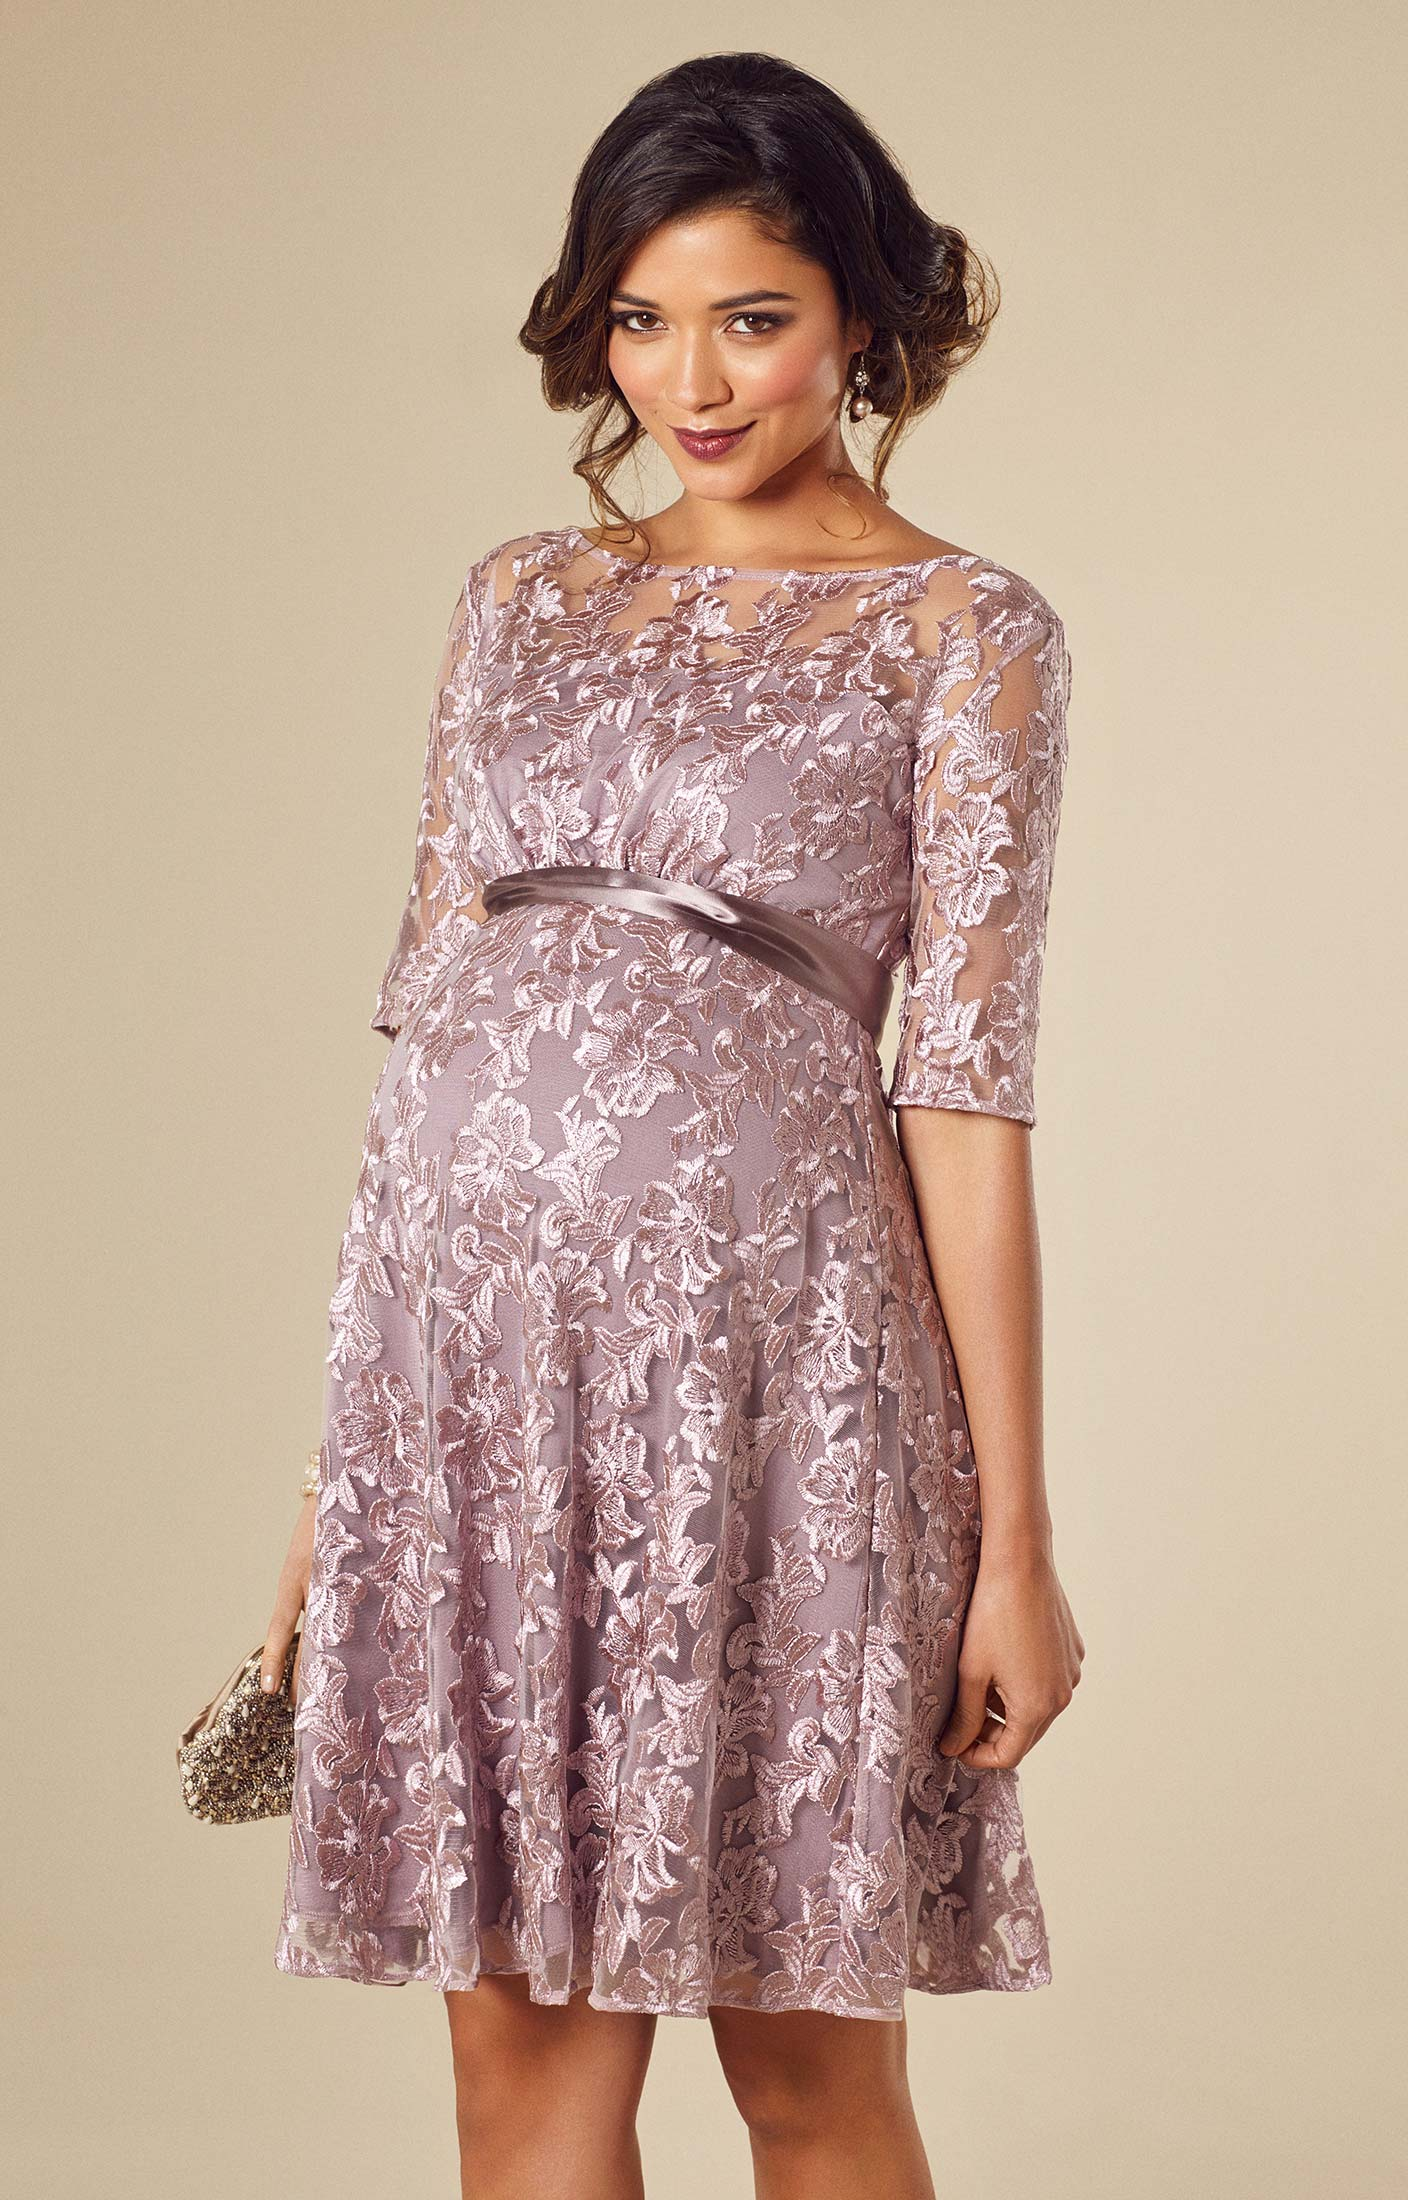 maternity wear asha maternity dress lilac by tiffany rose HPJBYCZ